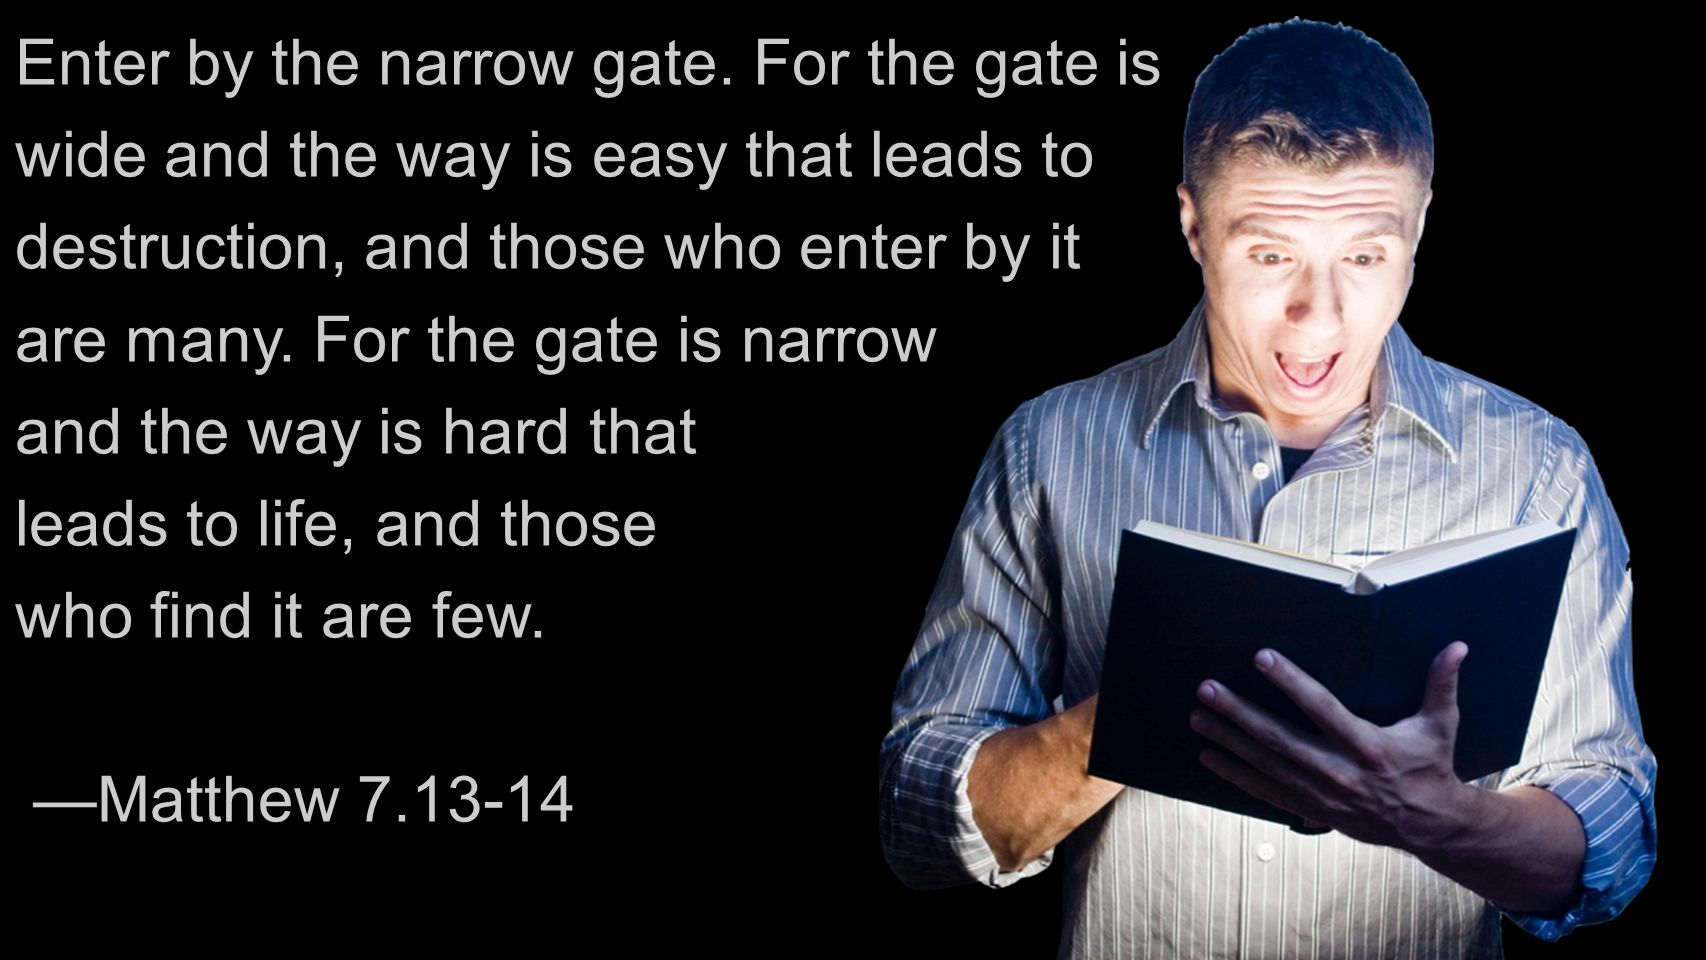 Enter by the narrow gate.